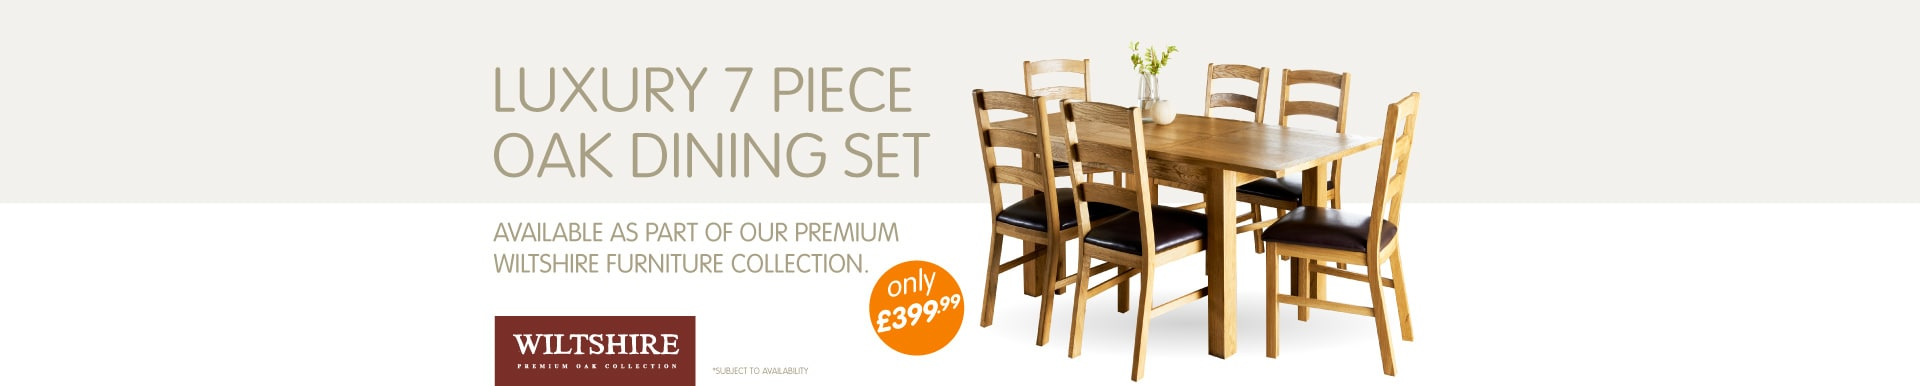 Wiltshire 7 piece Oak Dining Set only £399.99 at B&M Stores.